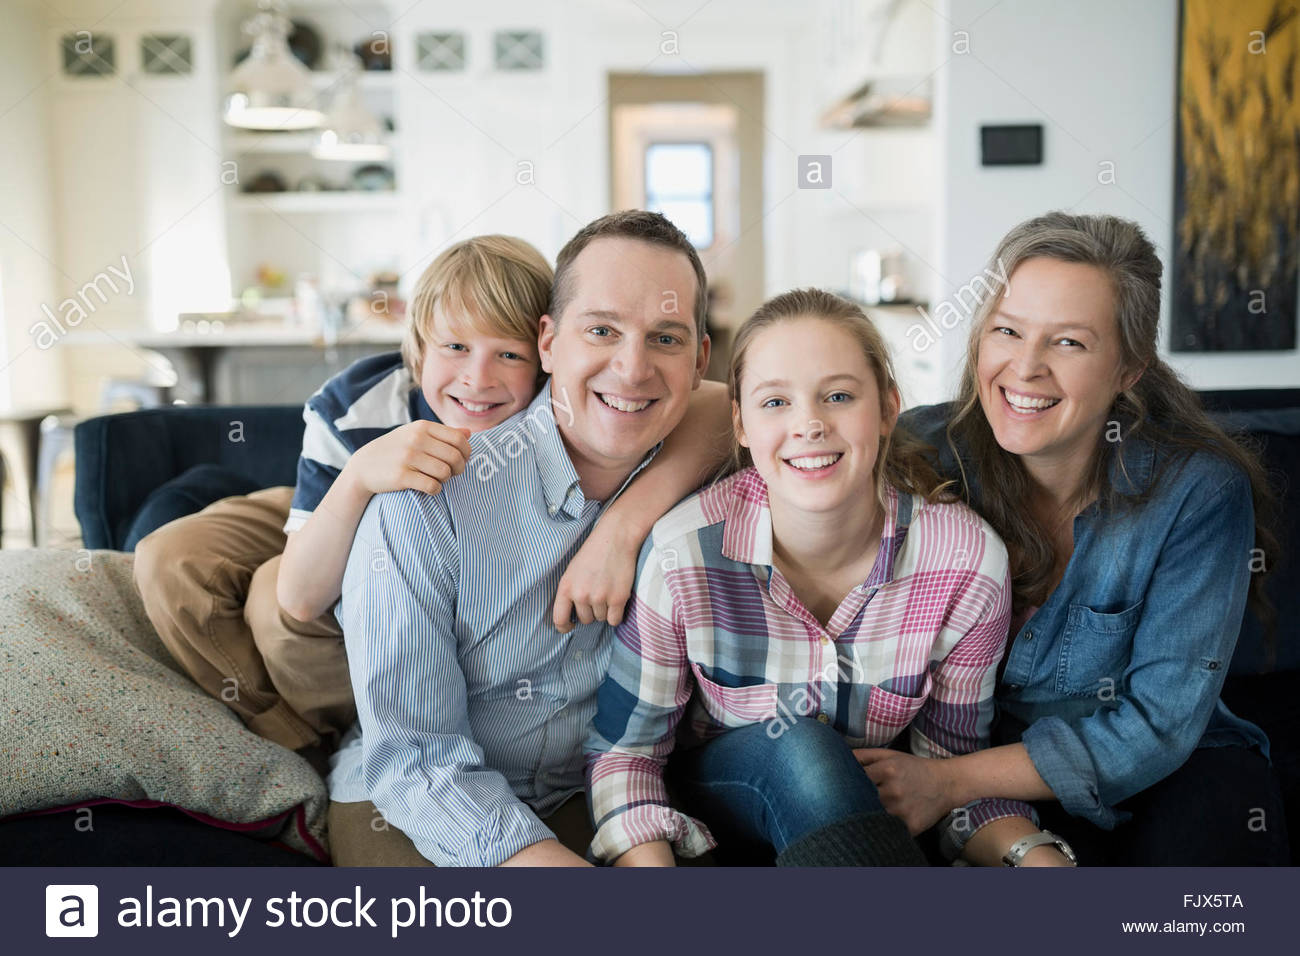 Portrait smiling family sur salon canapé Photo Stock